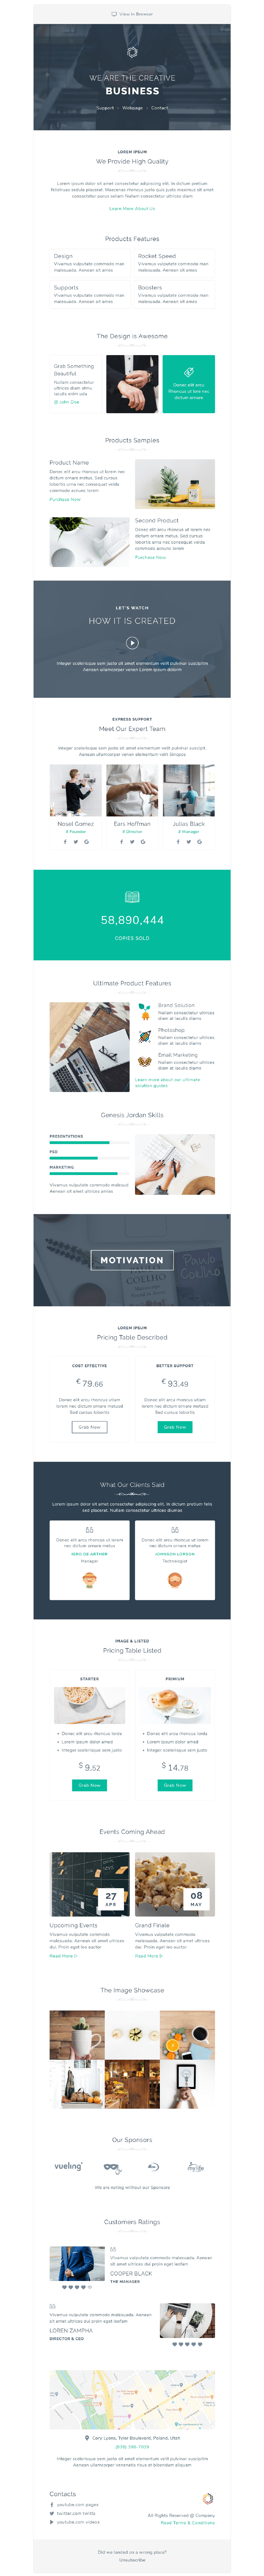 Mzone Responsive Newsletter Email Template For Business - 12